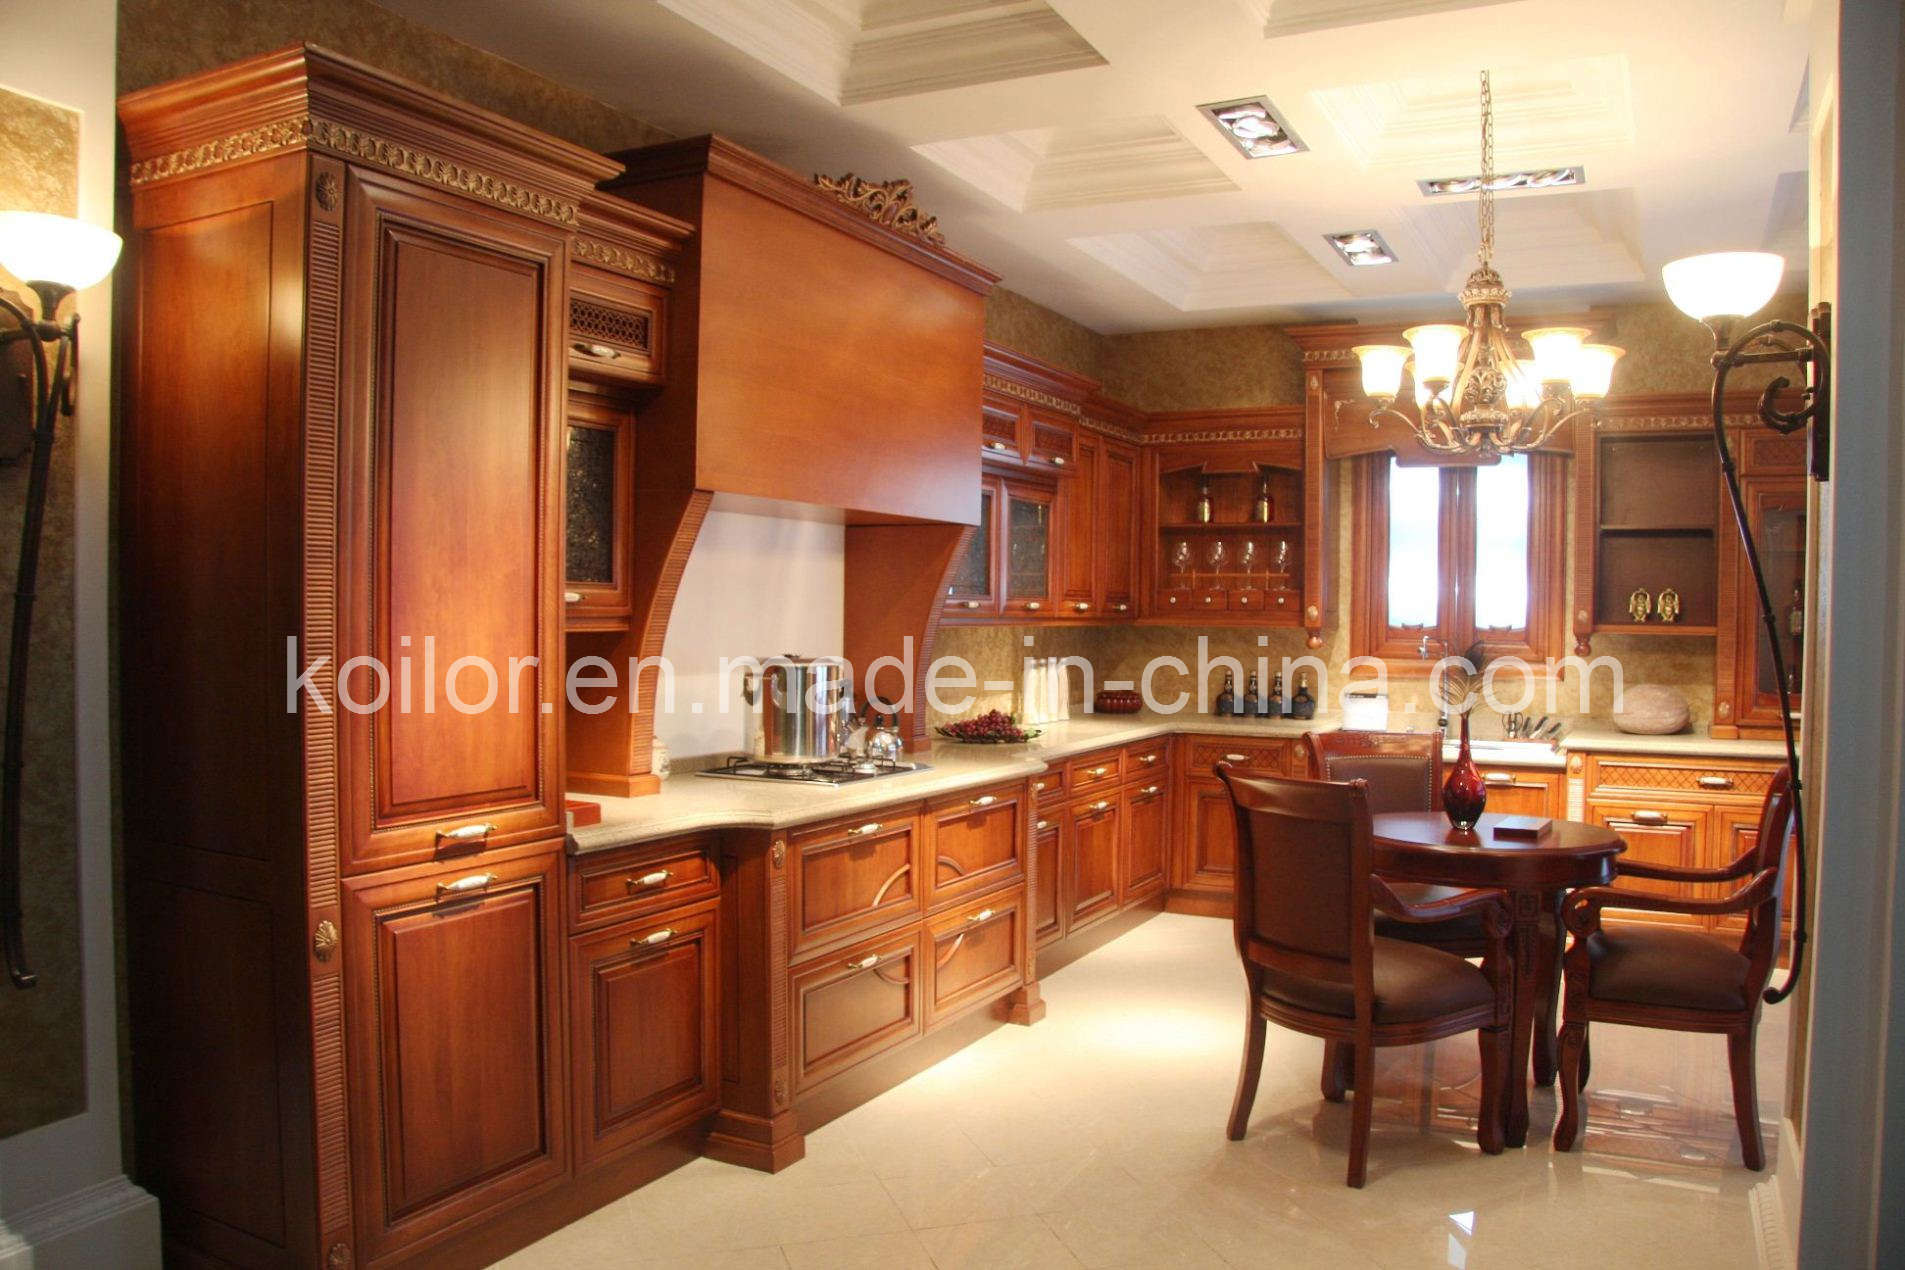 kitchen cabinet wood danze parma faucet china solid cabinets royal